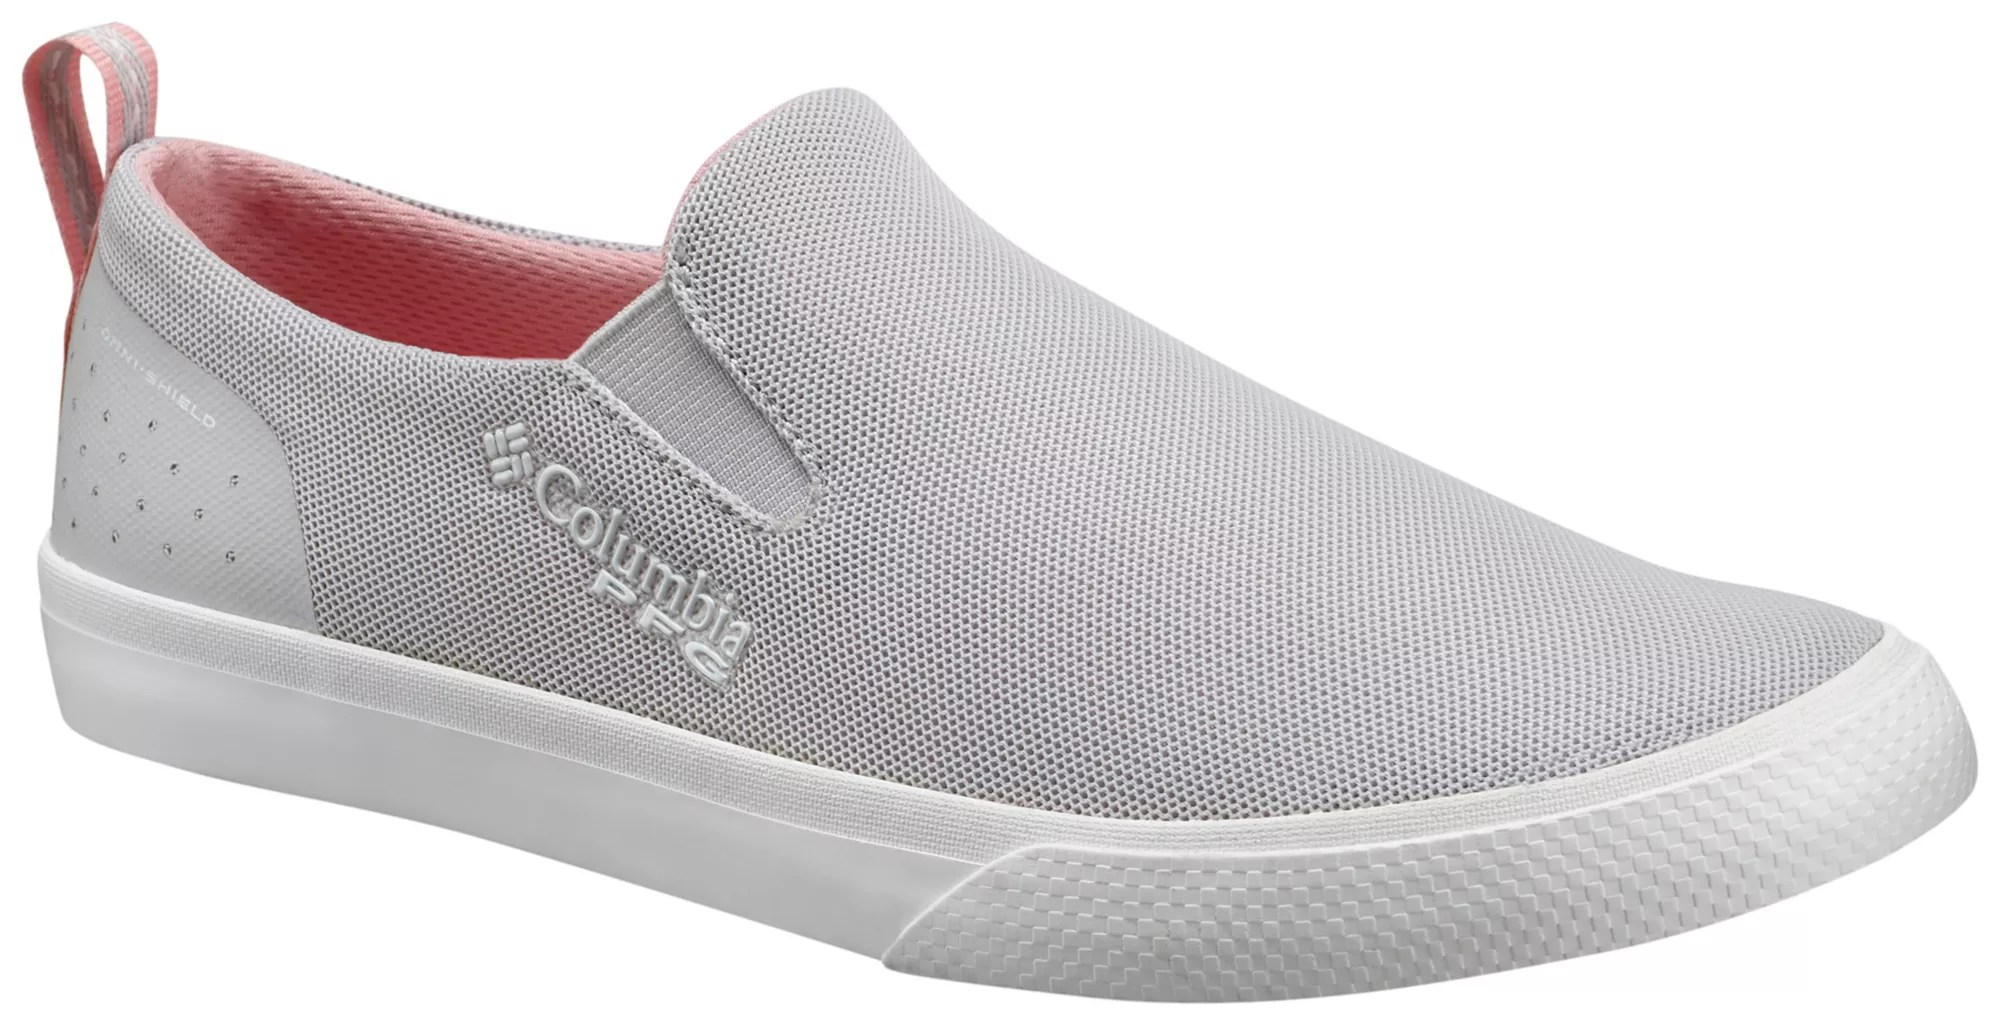 Womens Casual Slip On Shoes